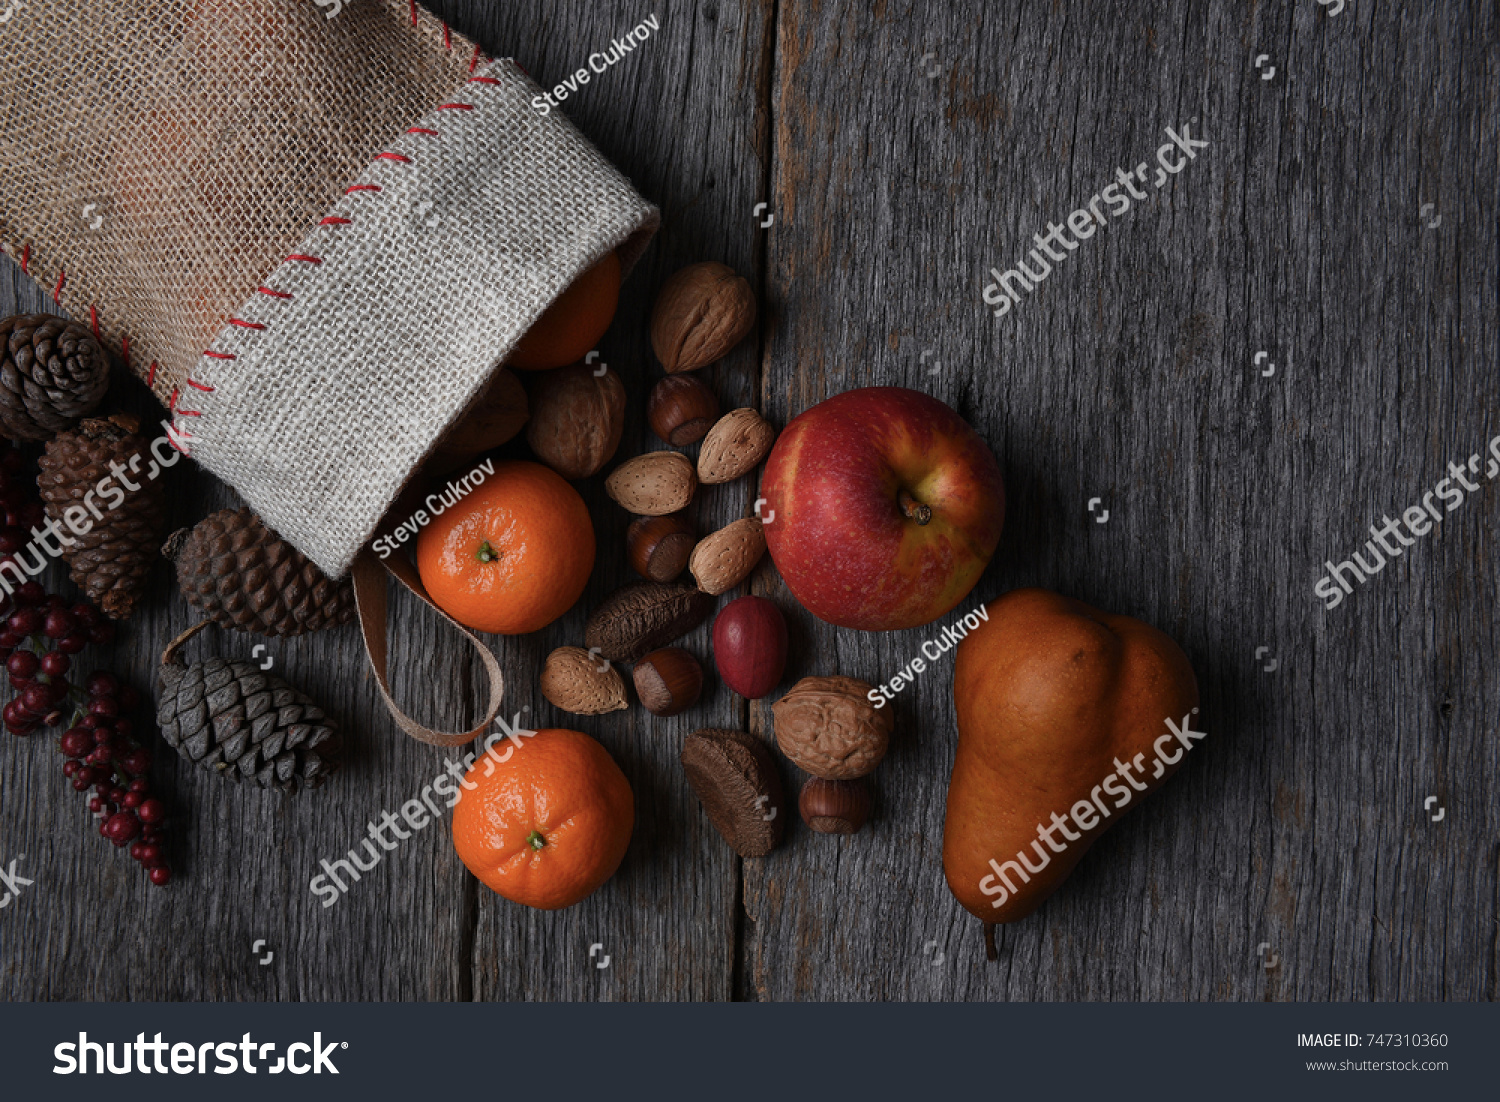 Top View Old Fashioned Christmas Stocking Stock Photo (Royalty Free ...